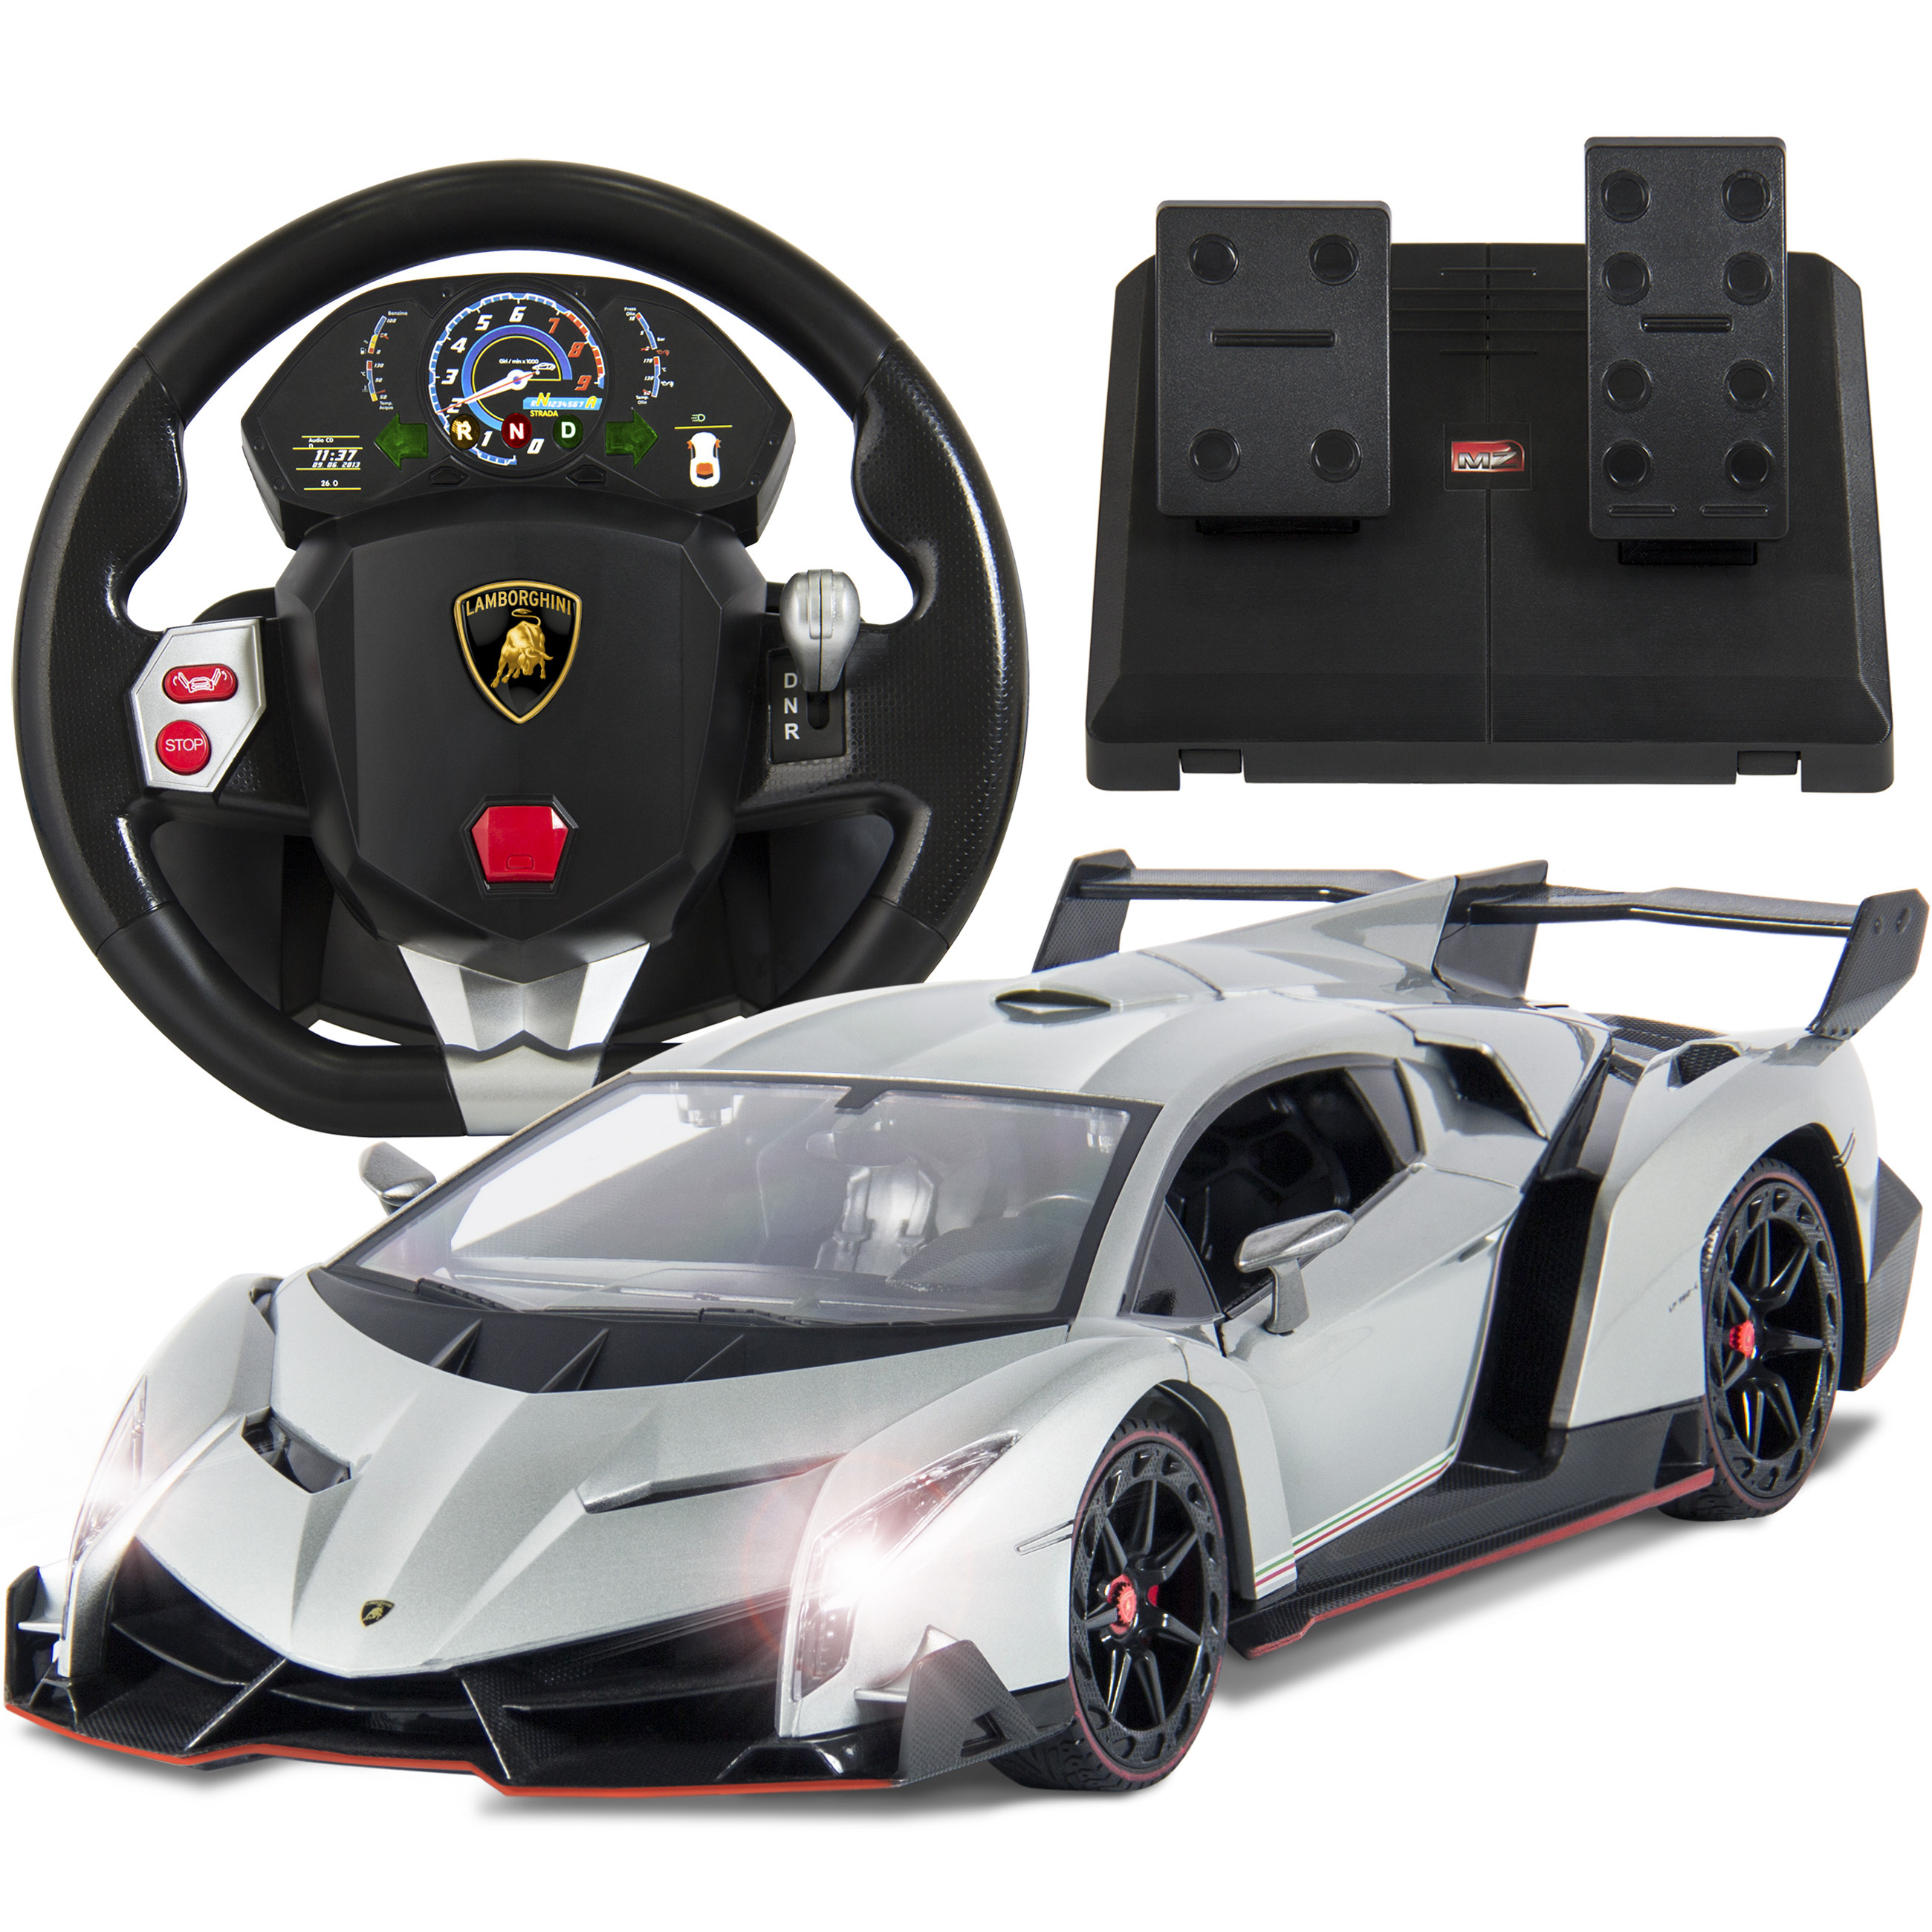 Best Choice Products 1/14 Scale RC Lamborghini Veneno Realistic Driving Gravity Sensor Remote Control Car Silver